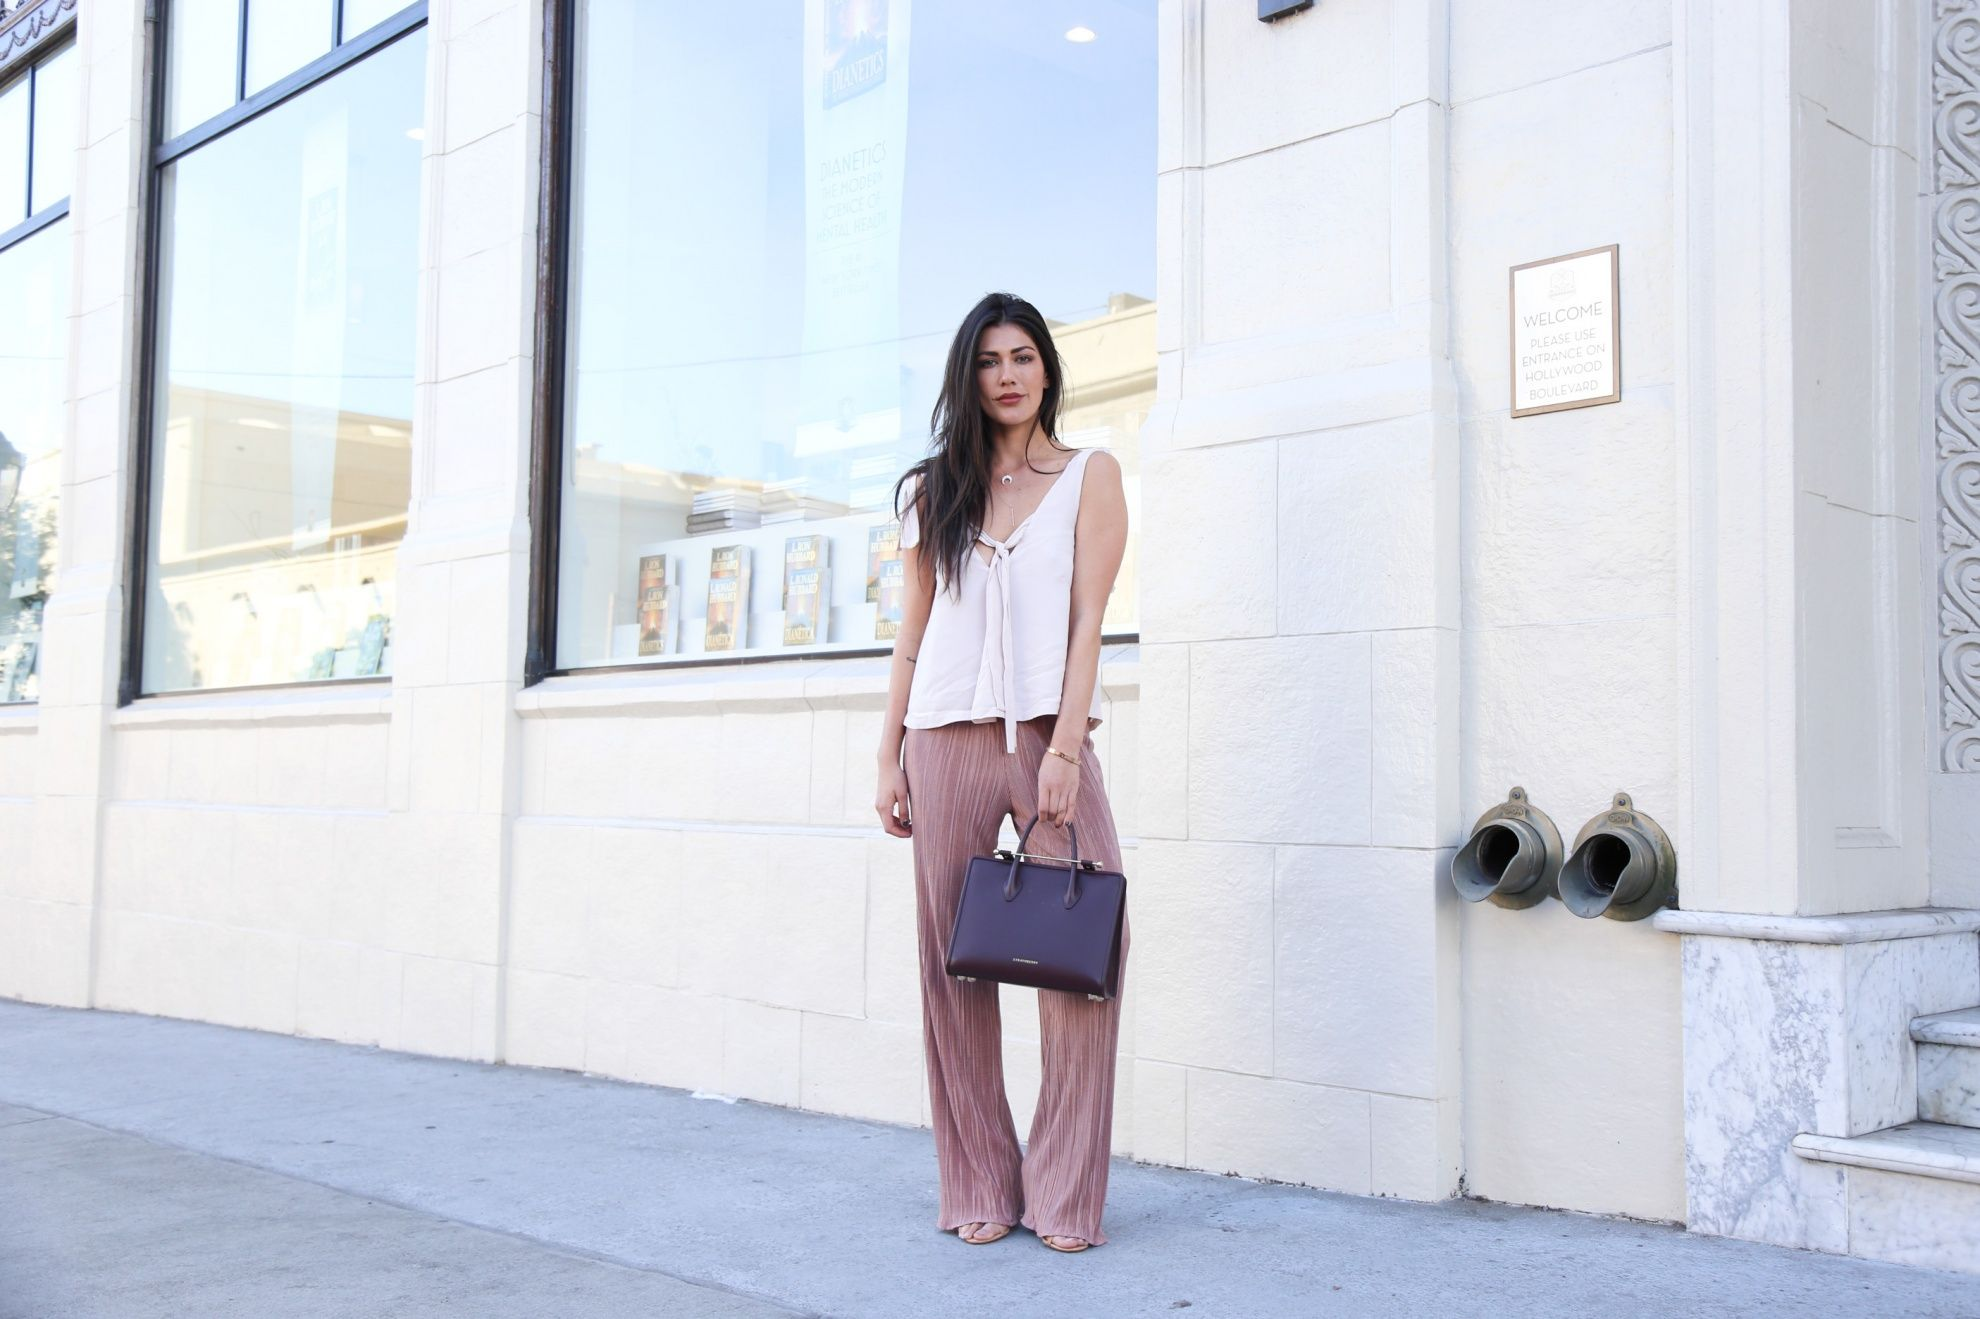 2181cb0f4fe6 Sara Montazami carries The Strathberry Midi Tote in Burgundy